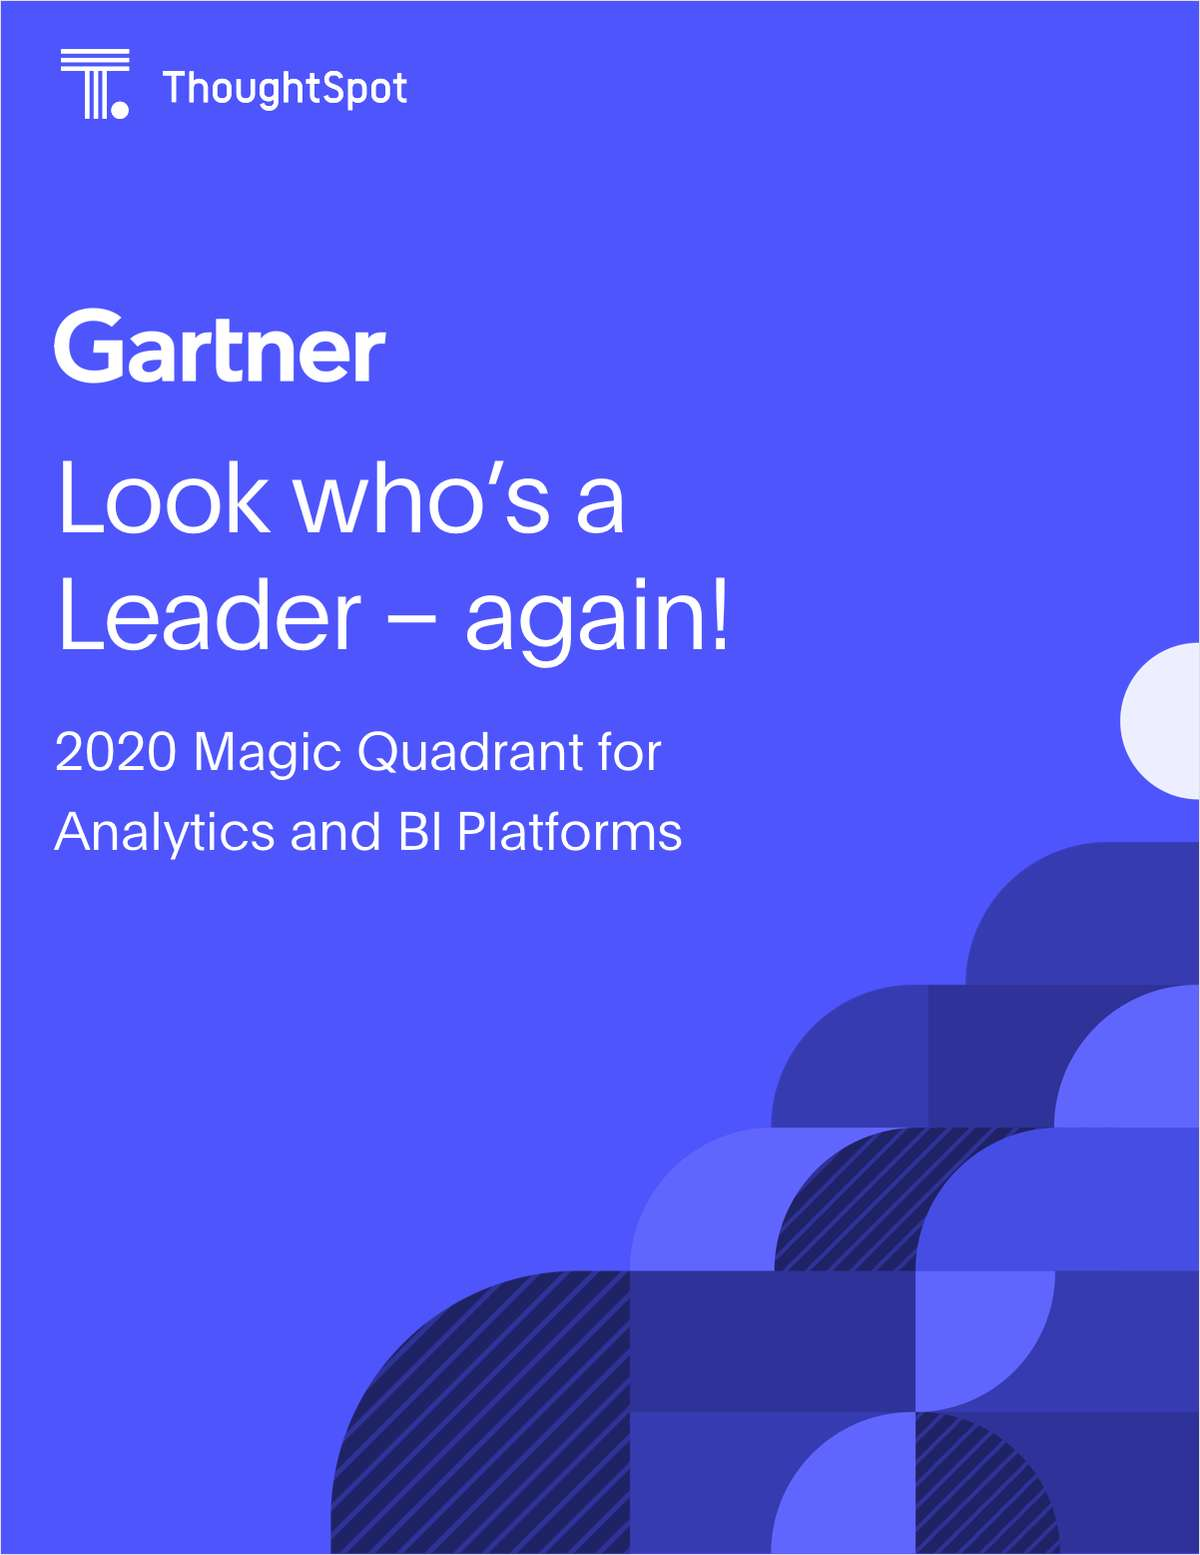 2020 Magic Quadrant for Business Intelligence and Analytics Platforms